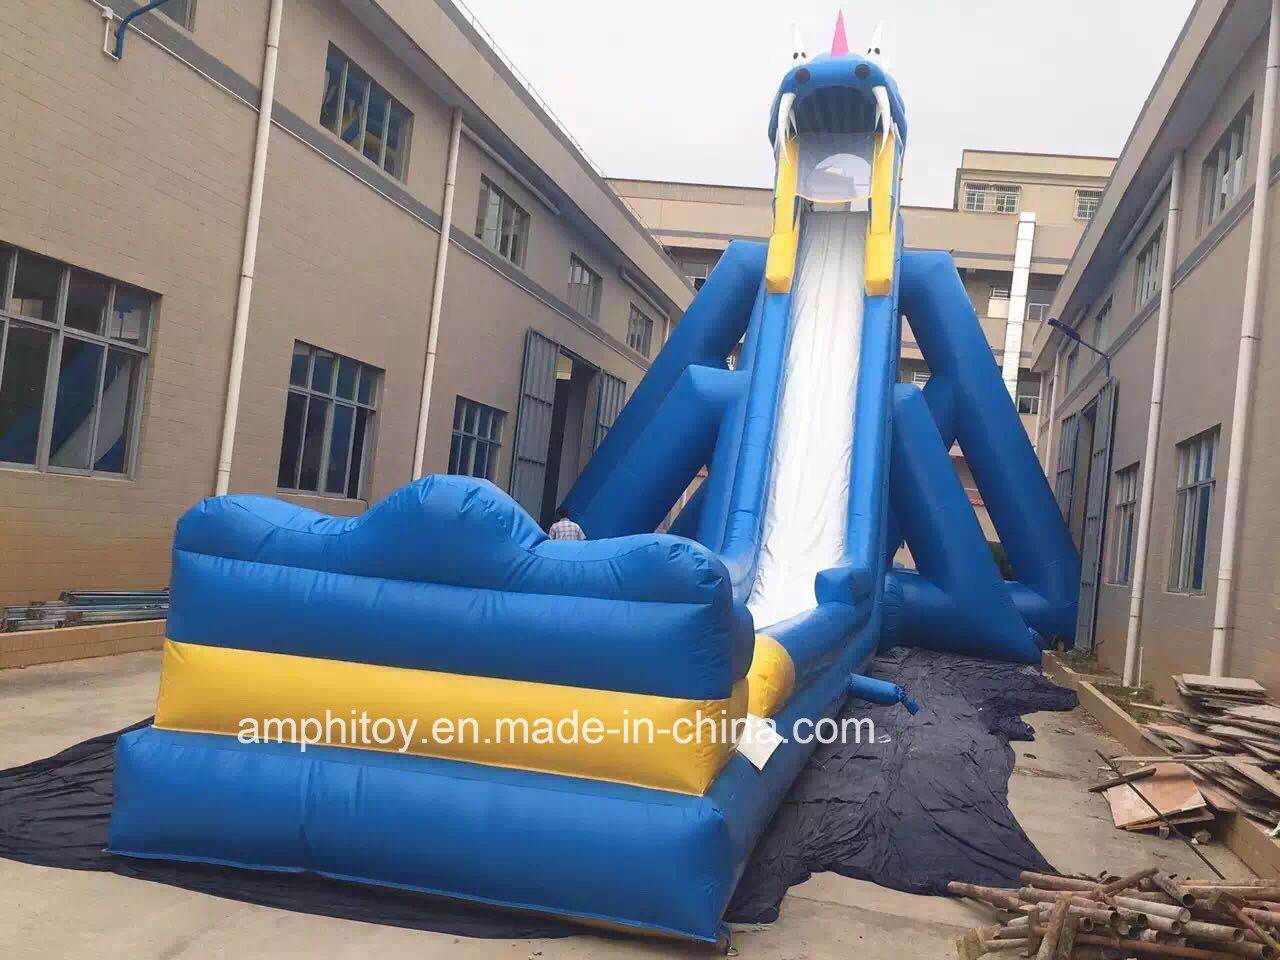 Inflatable Slide for Kids Supply